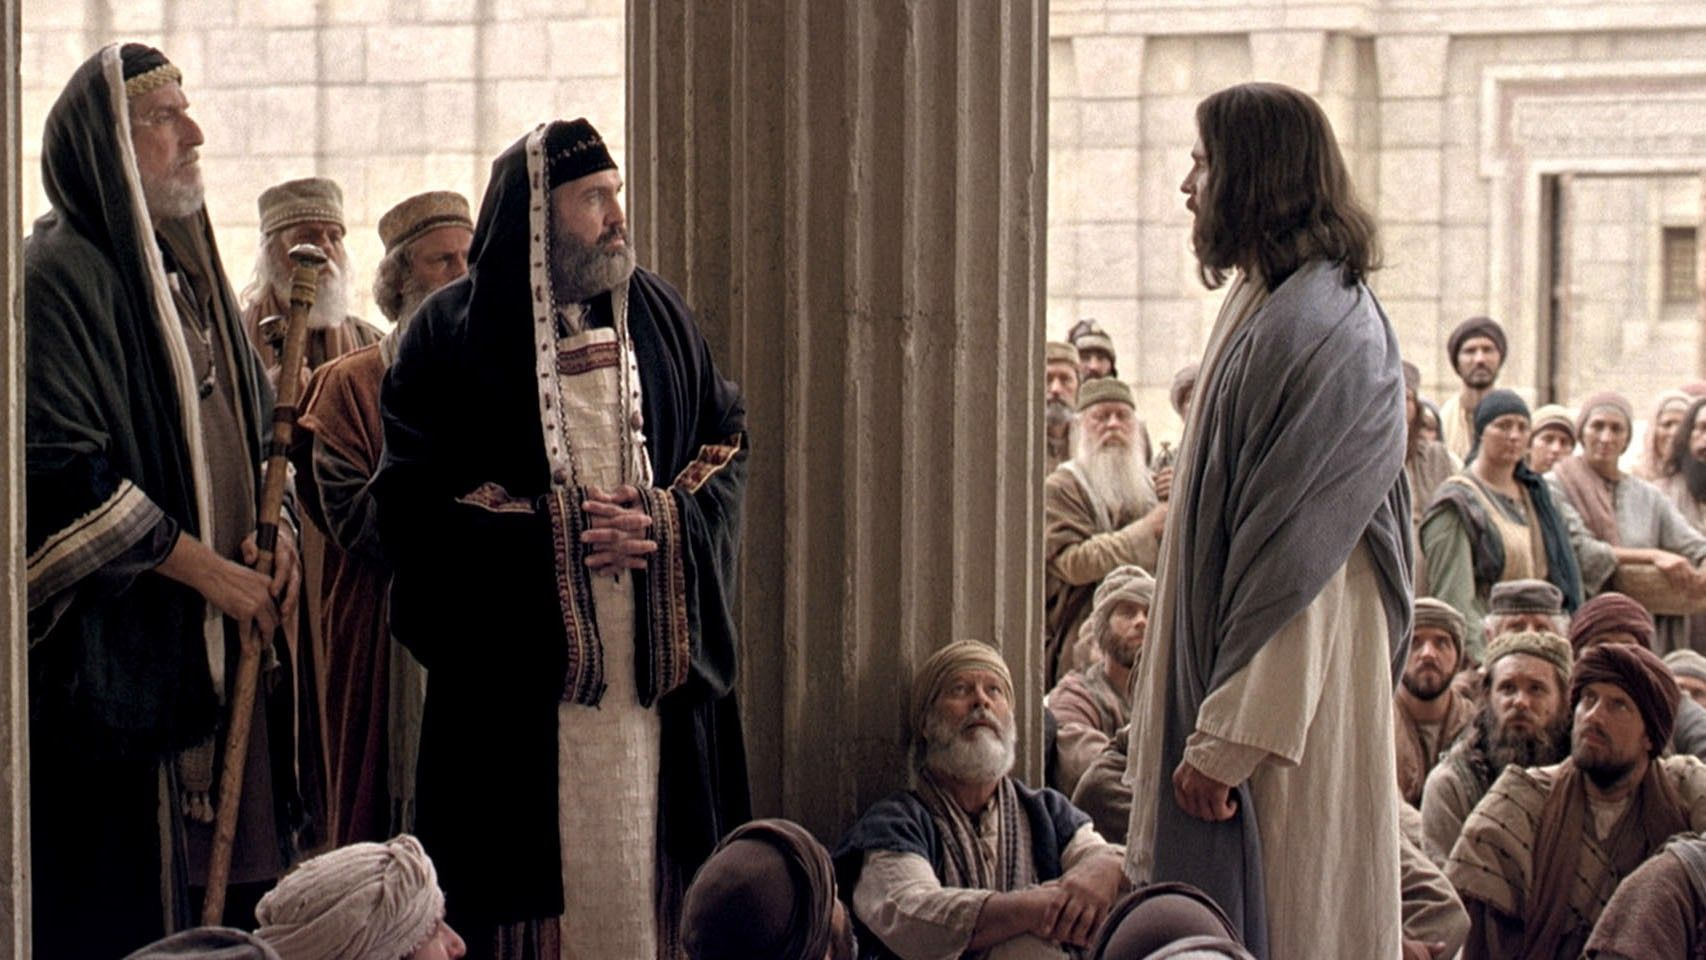 Christ's Authority is Questioned